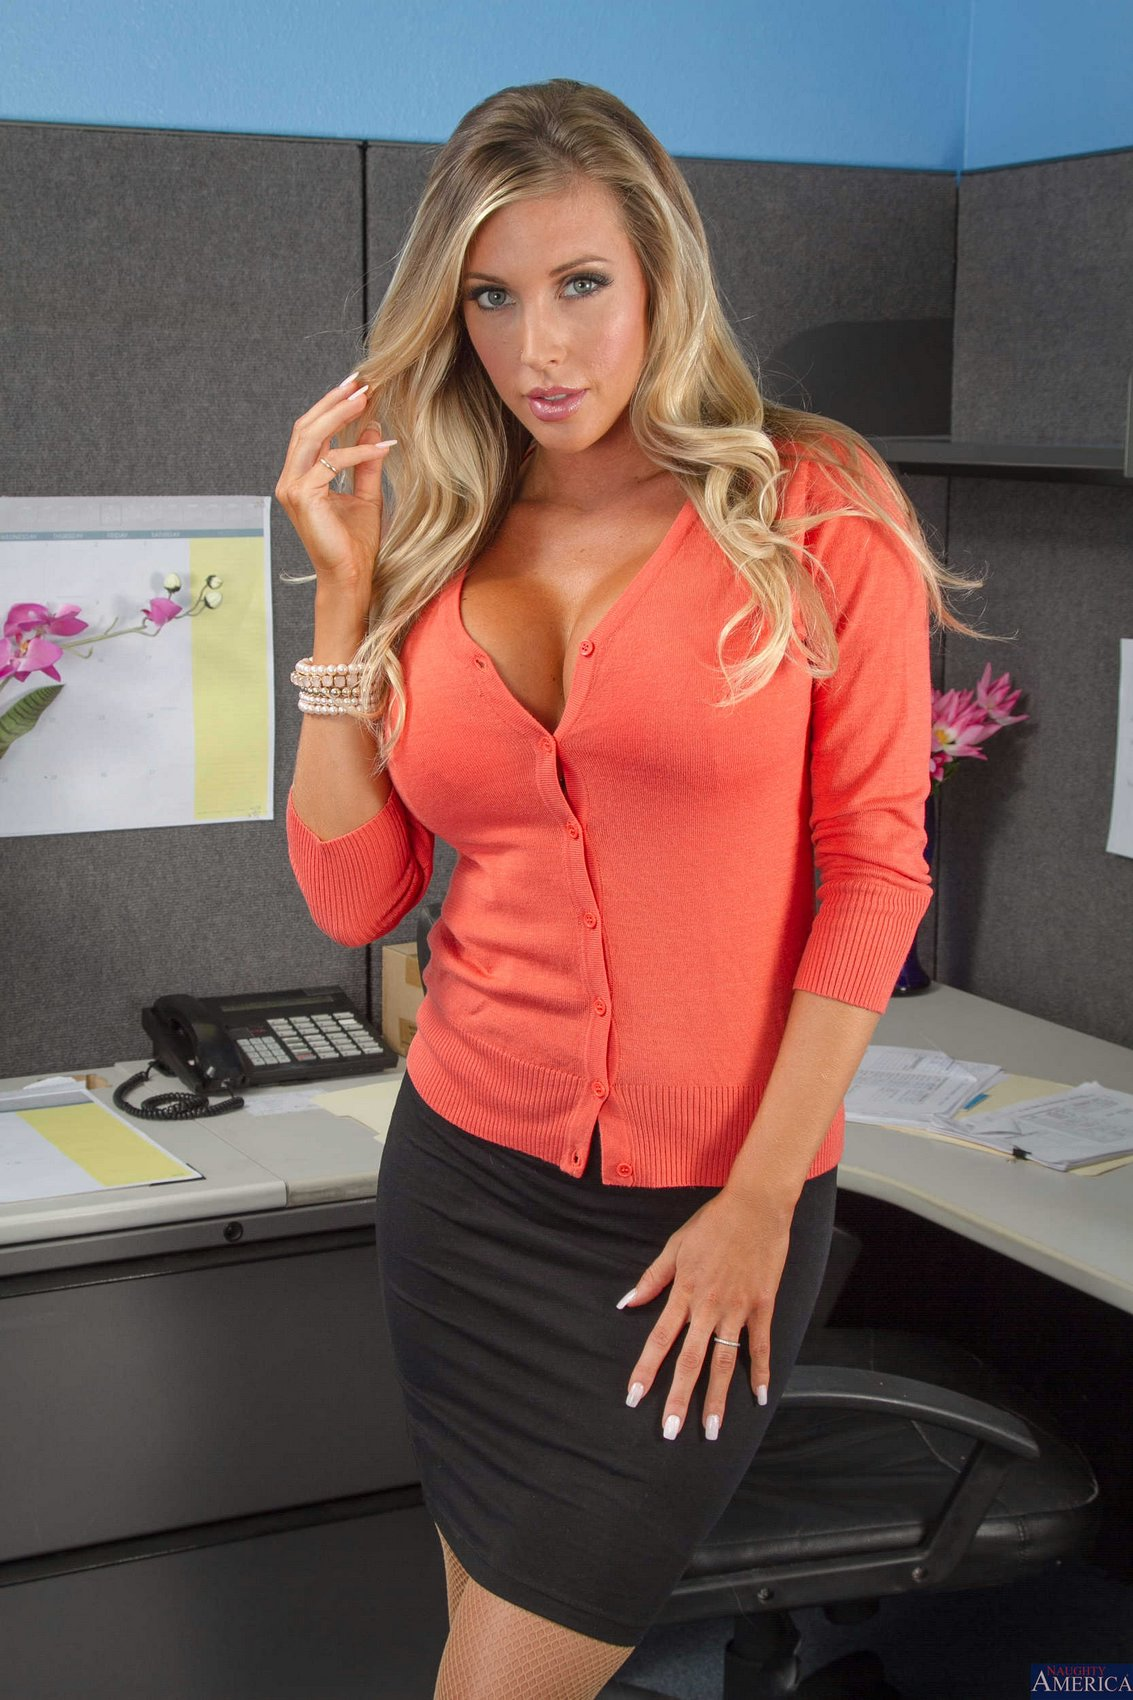 Samantha Saint In Sexy Stockings Posing For Your Pleasure In The Office - My Pornstar Book-7568